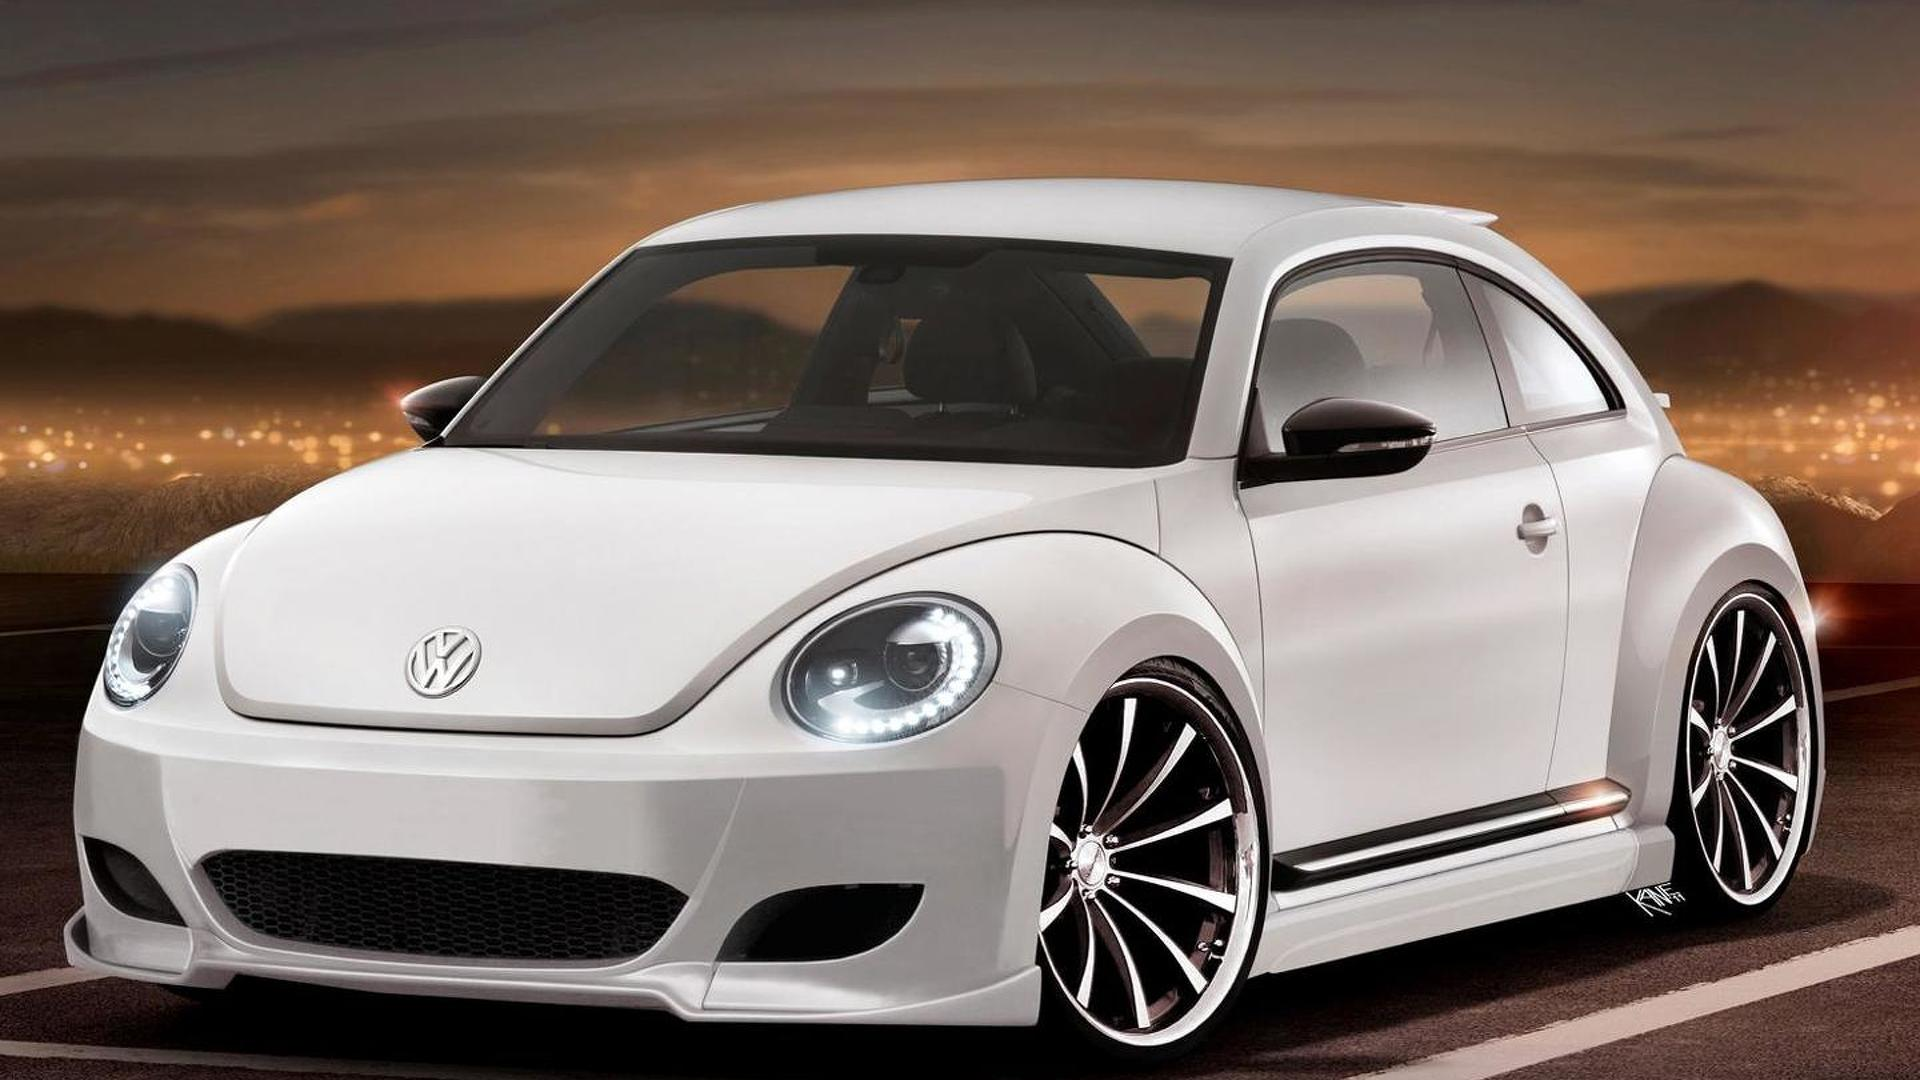 2012 Volkswagen Beetle spotted on the street [video]